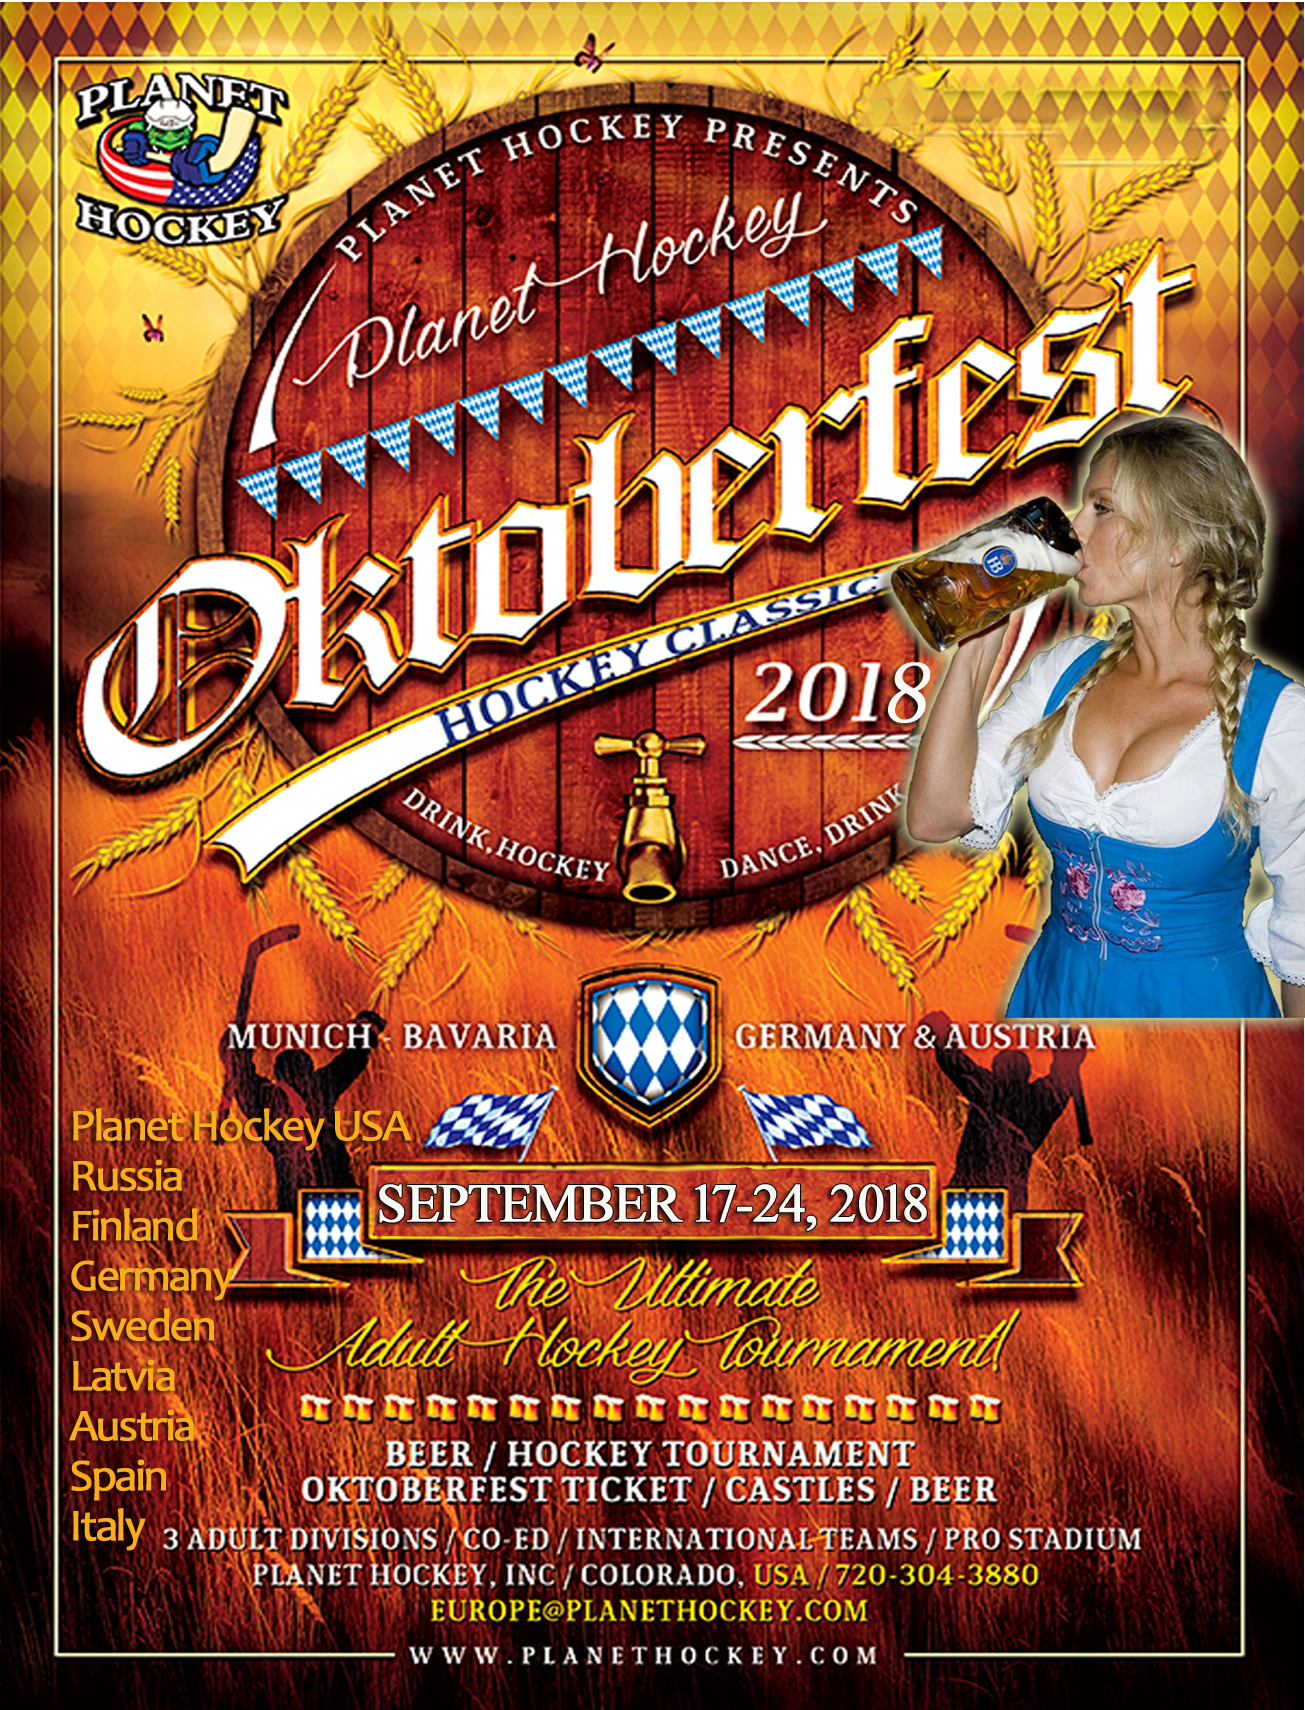 oktoberfest munich 2018 beer price